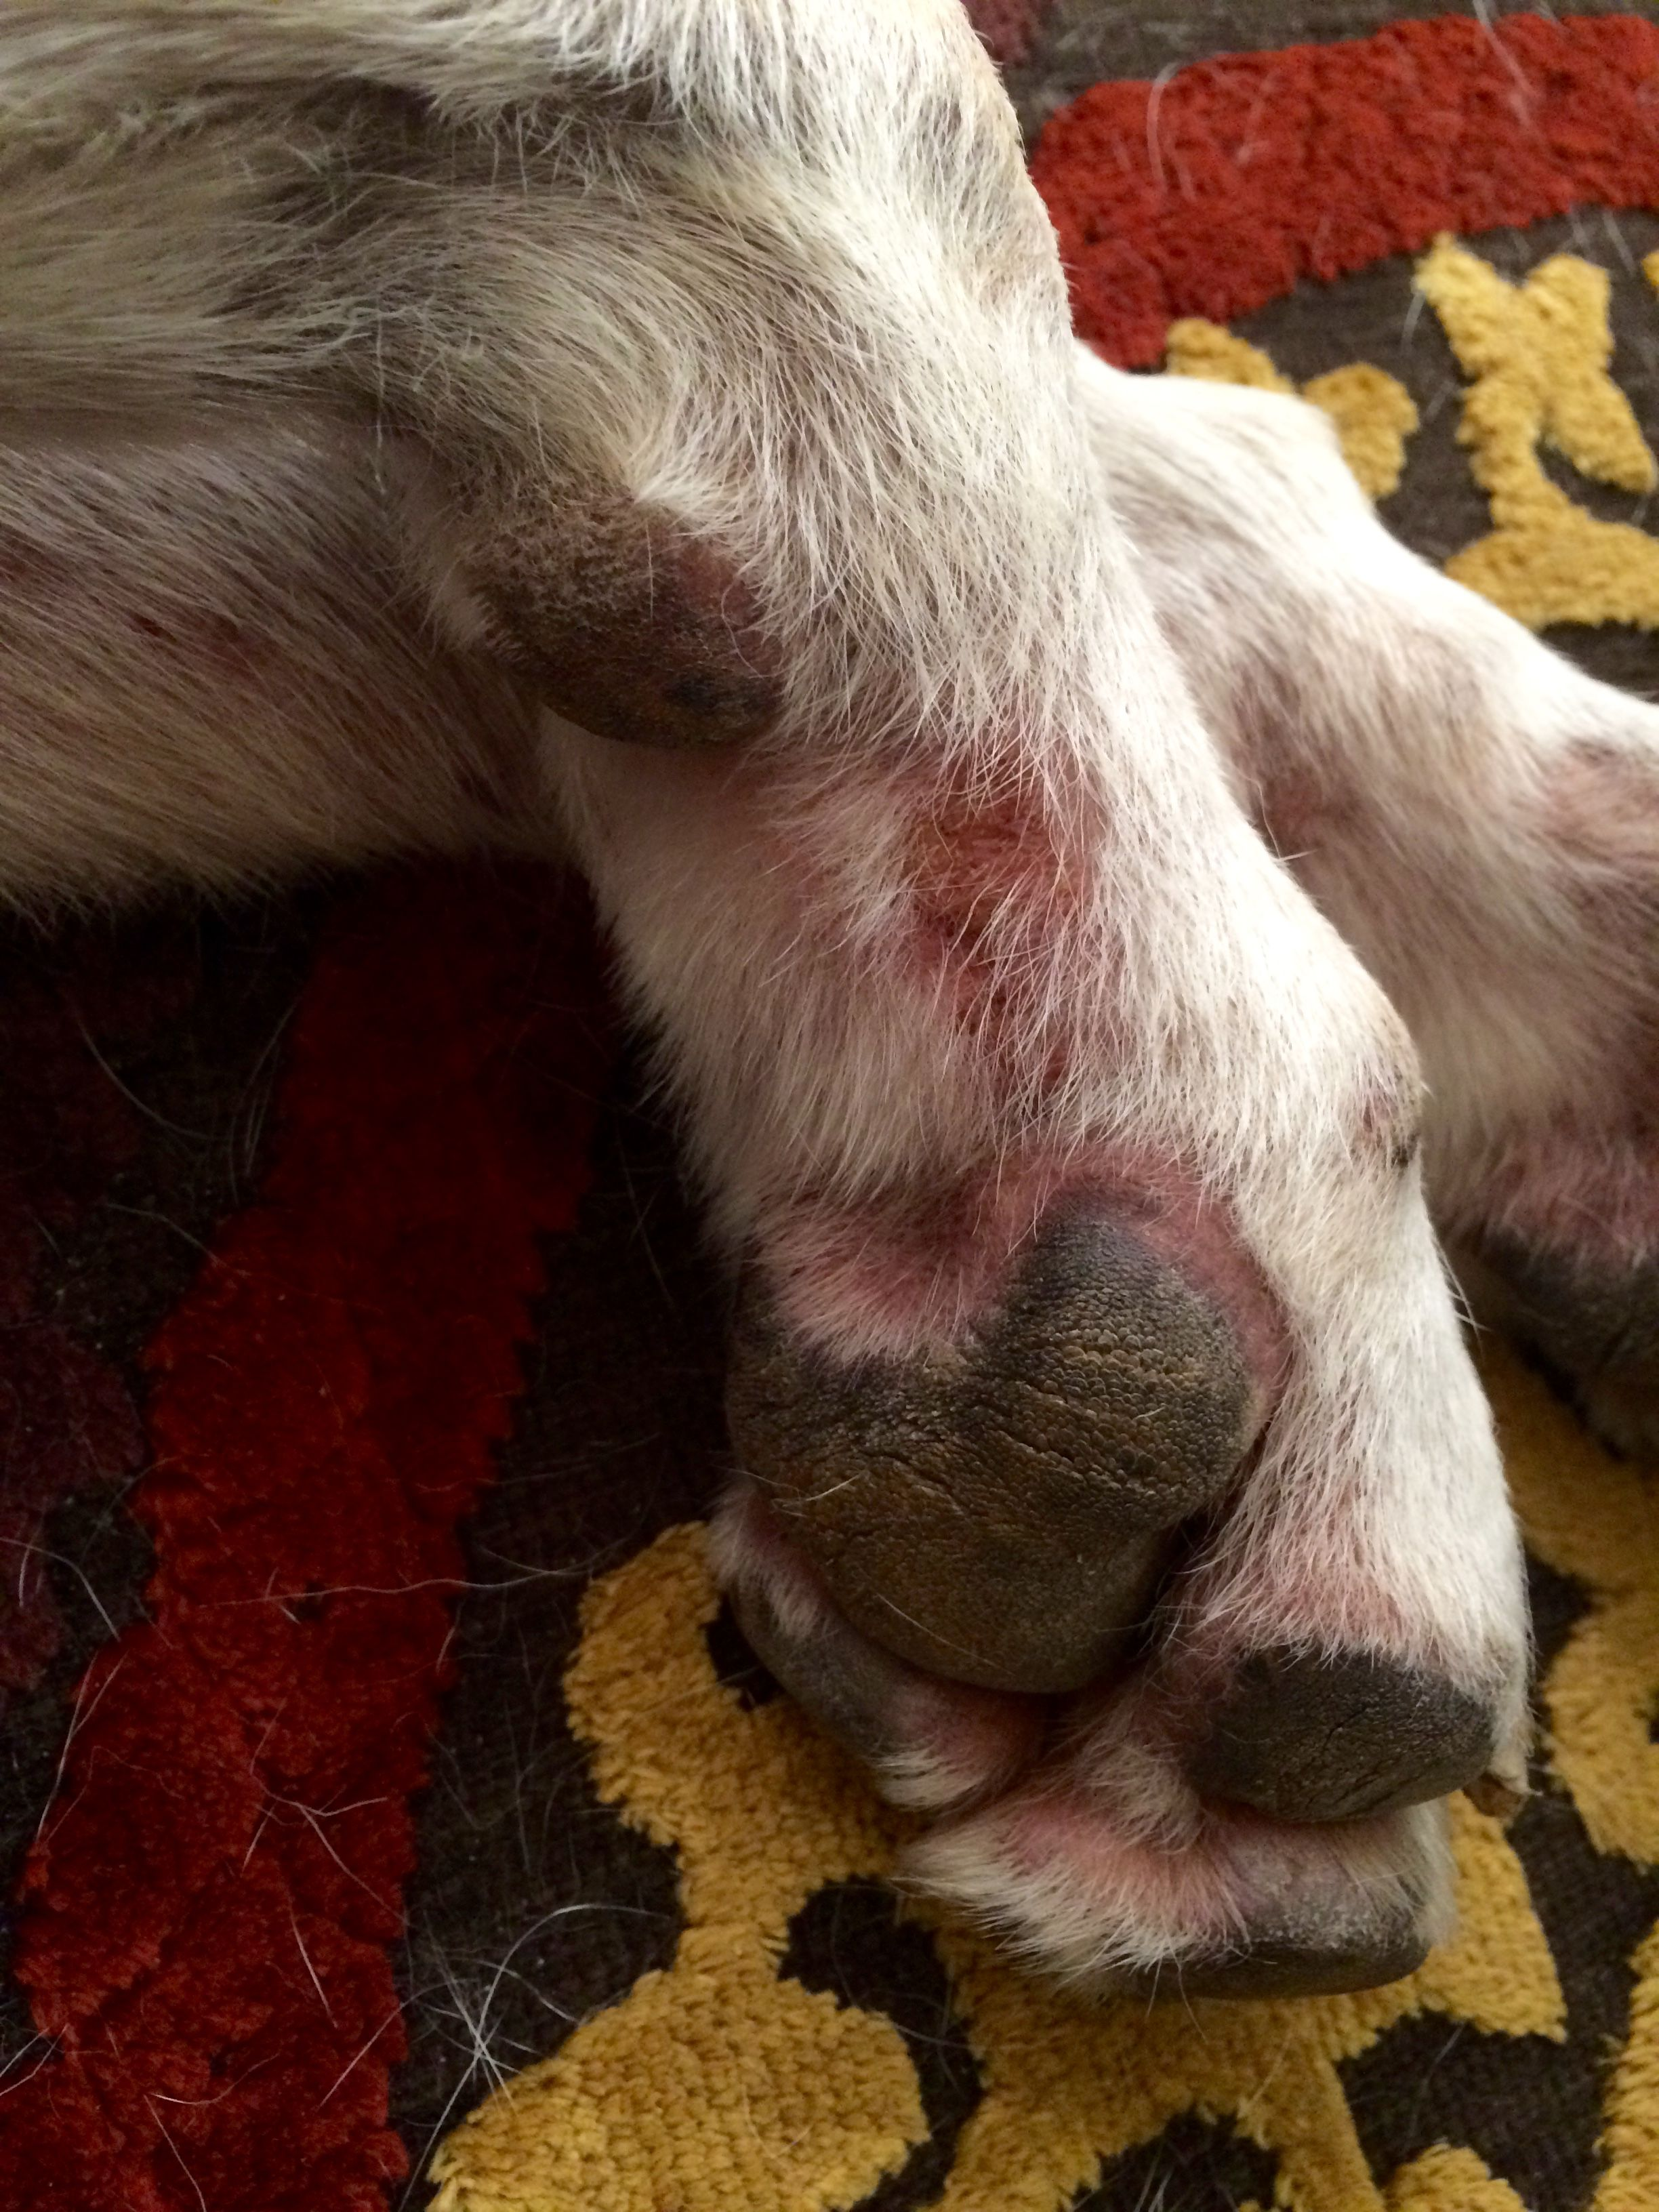 Holistic Remedies For Treating Hot Spots And Dog Allergies From A Holistic Vet In Phoenix B Dog Allergies Dog Remedies Itchy Dog